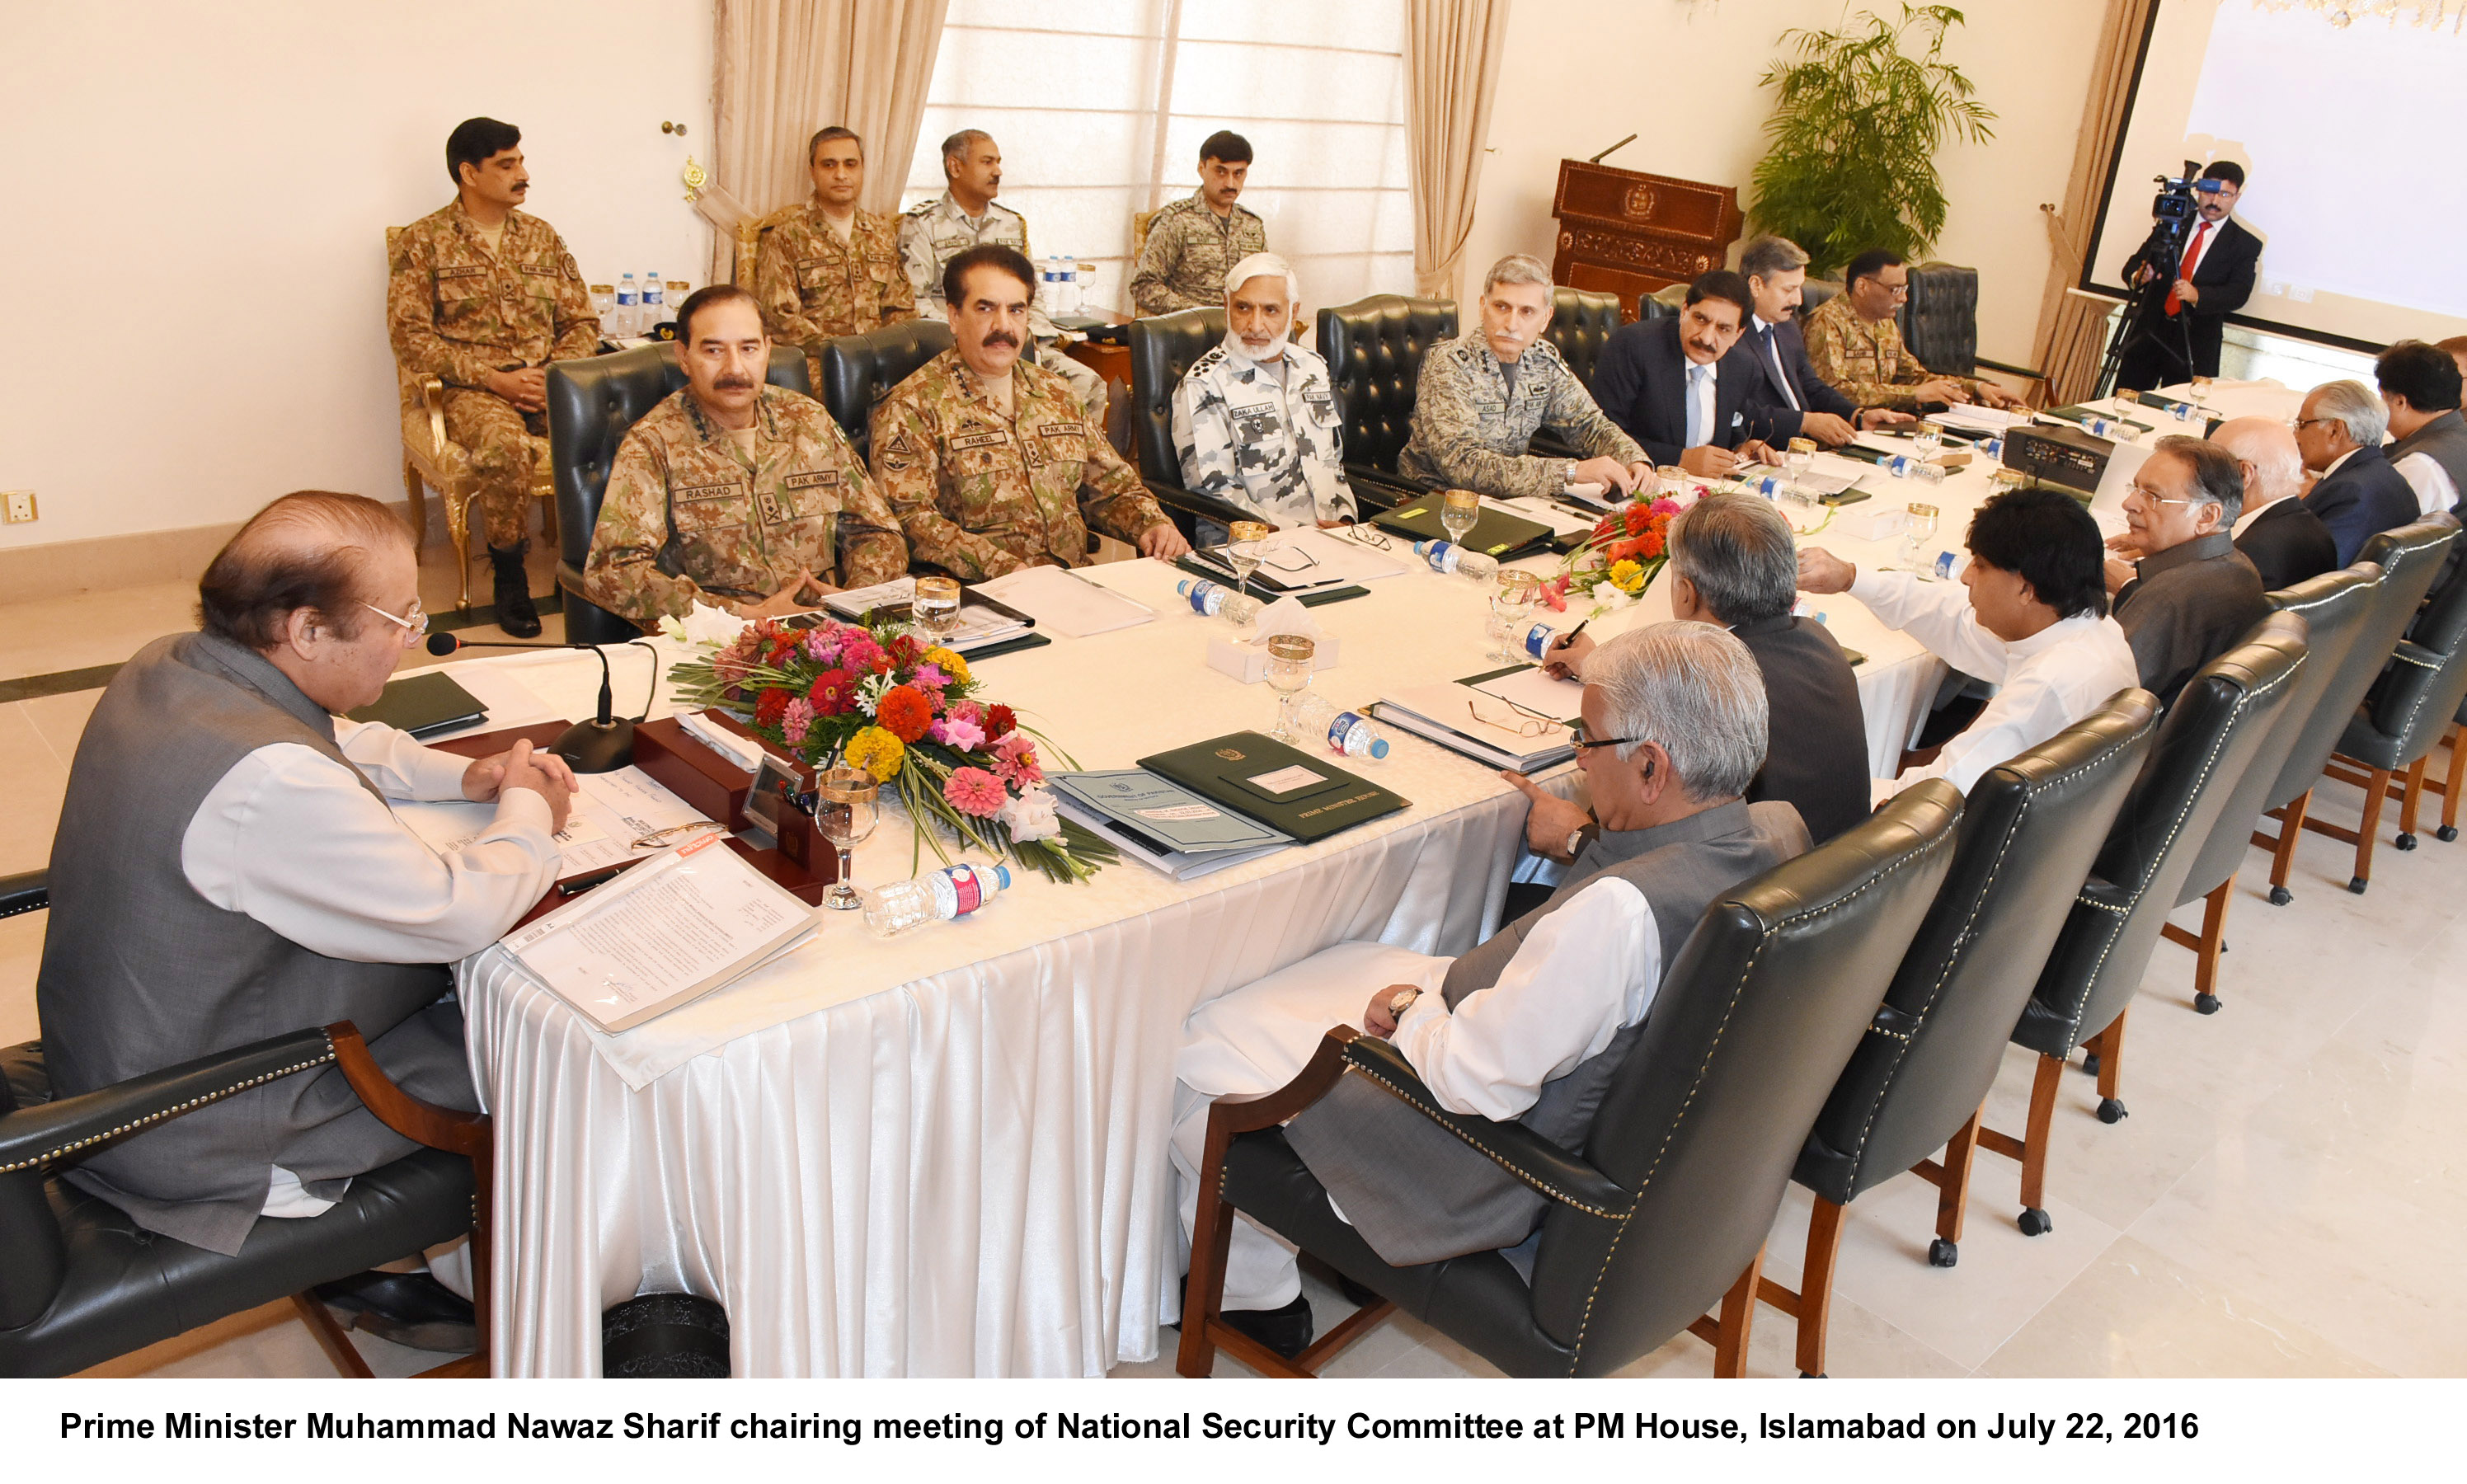 Prime Minister Muhammad Nawaz Sharif chairing meeting of National Security Committee at PM House, Islamabad on July 22, 2016